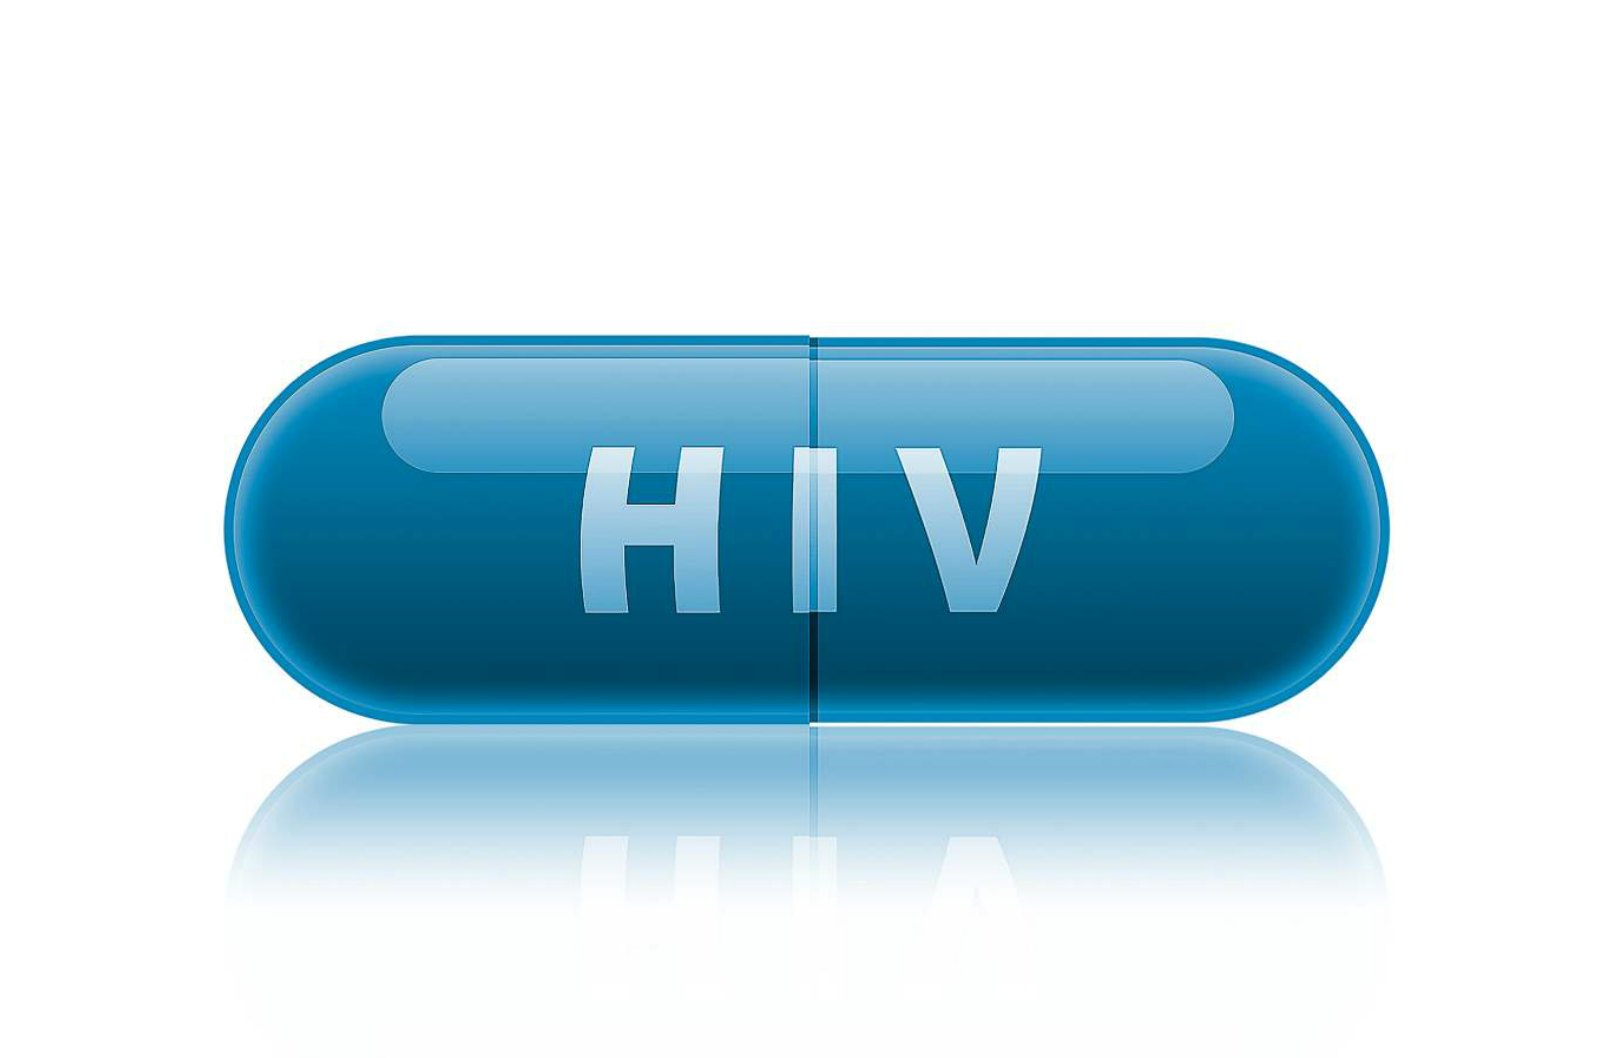 Rapid Screening Fits Patients for New HIV-fighting Drugs